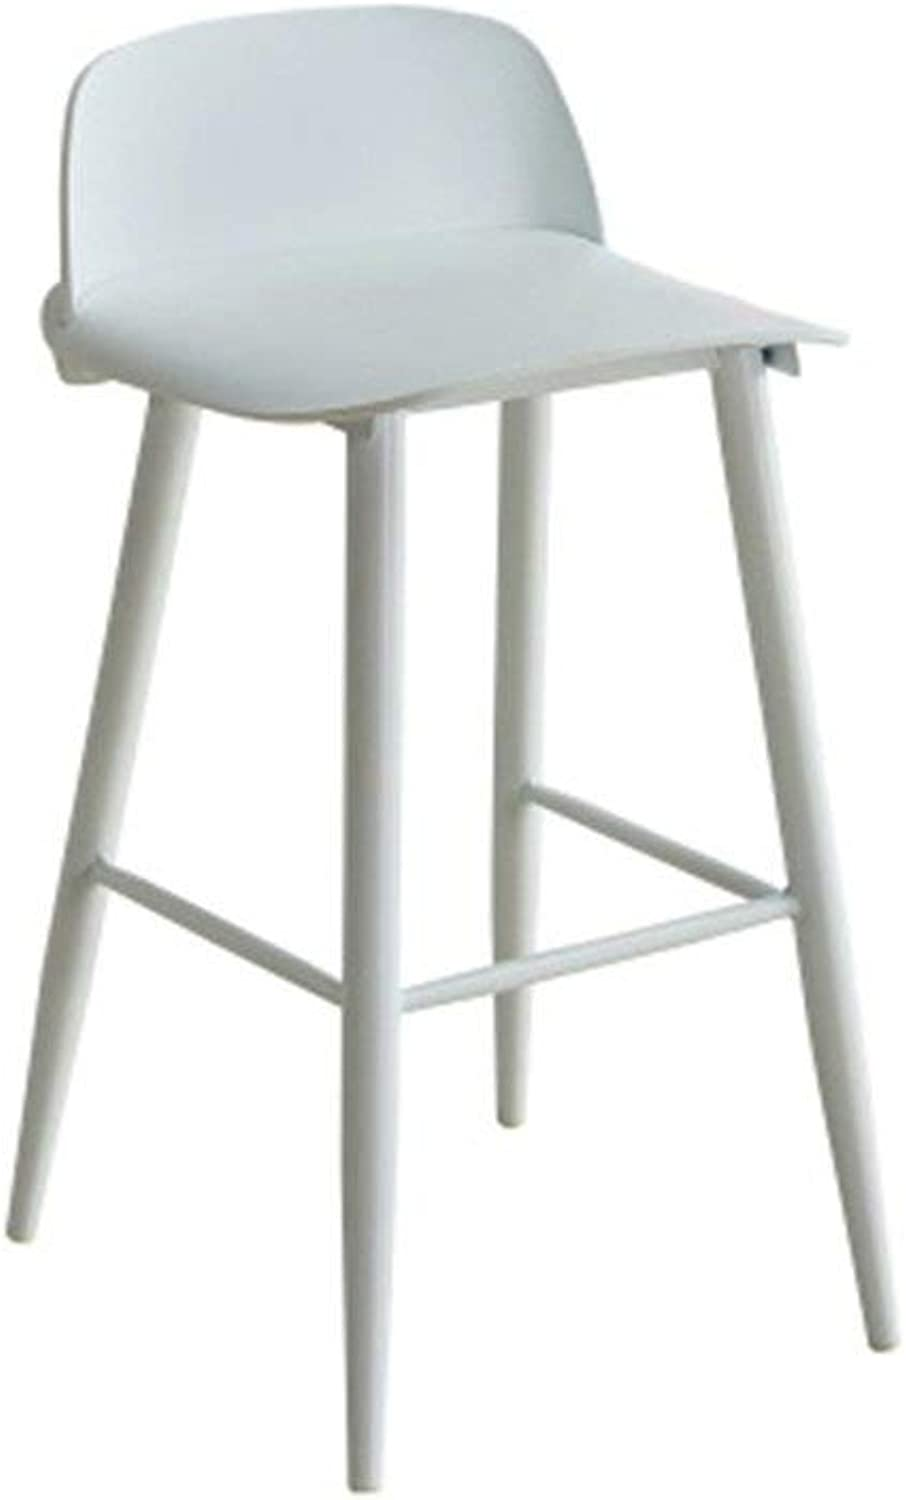 PP Fly Folding Stool Bar Chair High Chair Creative Coffee Shop Chair Bar Chair Home Bar Chair Seat HENGXIAO (color   White, Size   43  50  91CM)